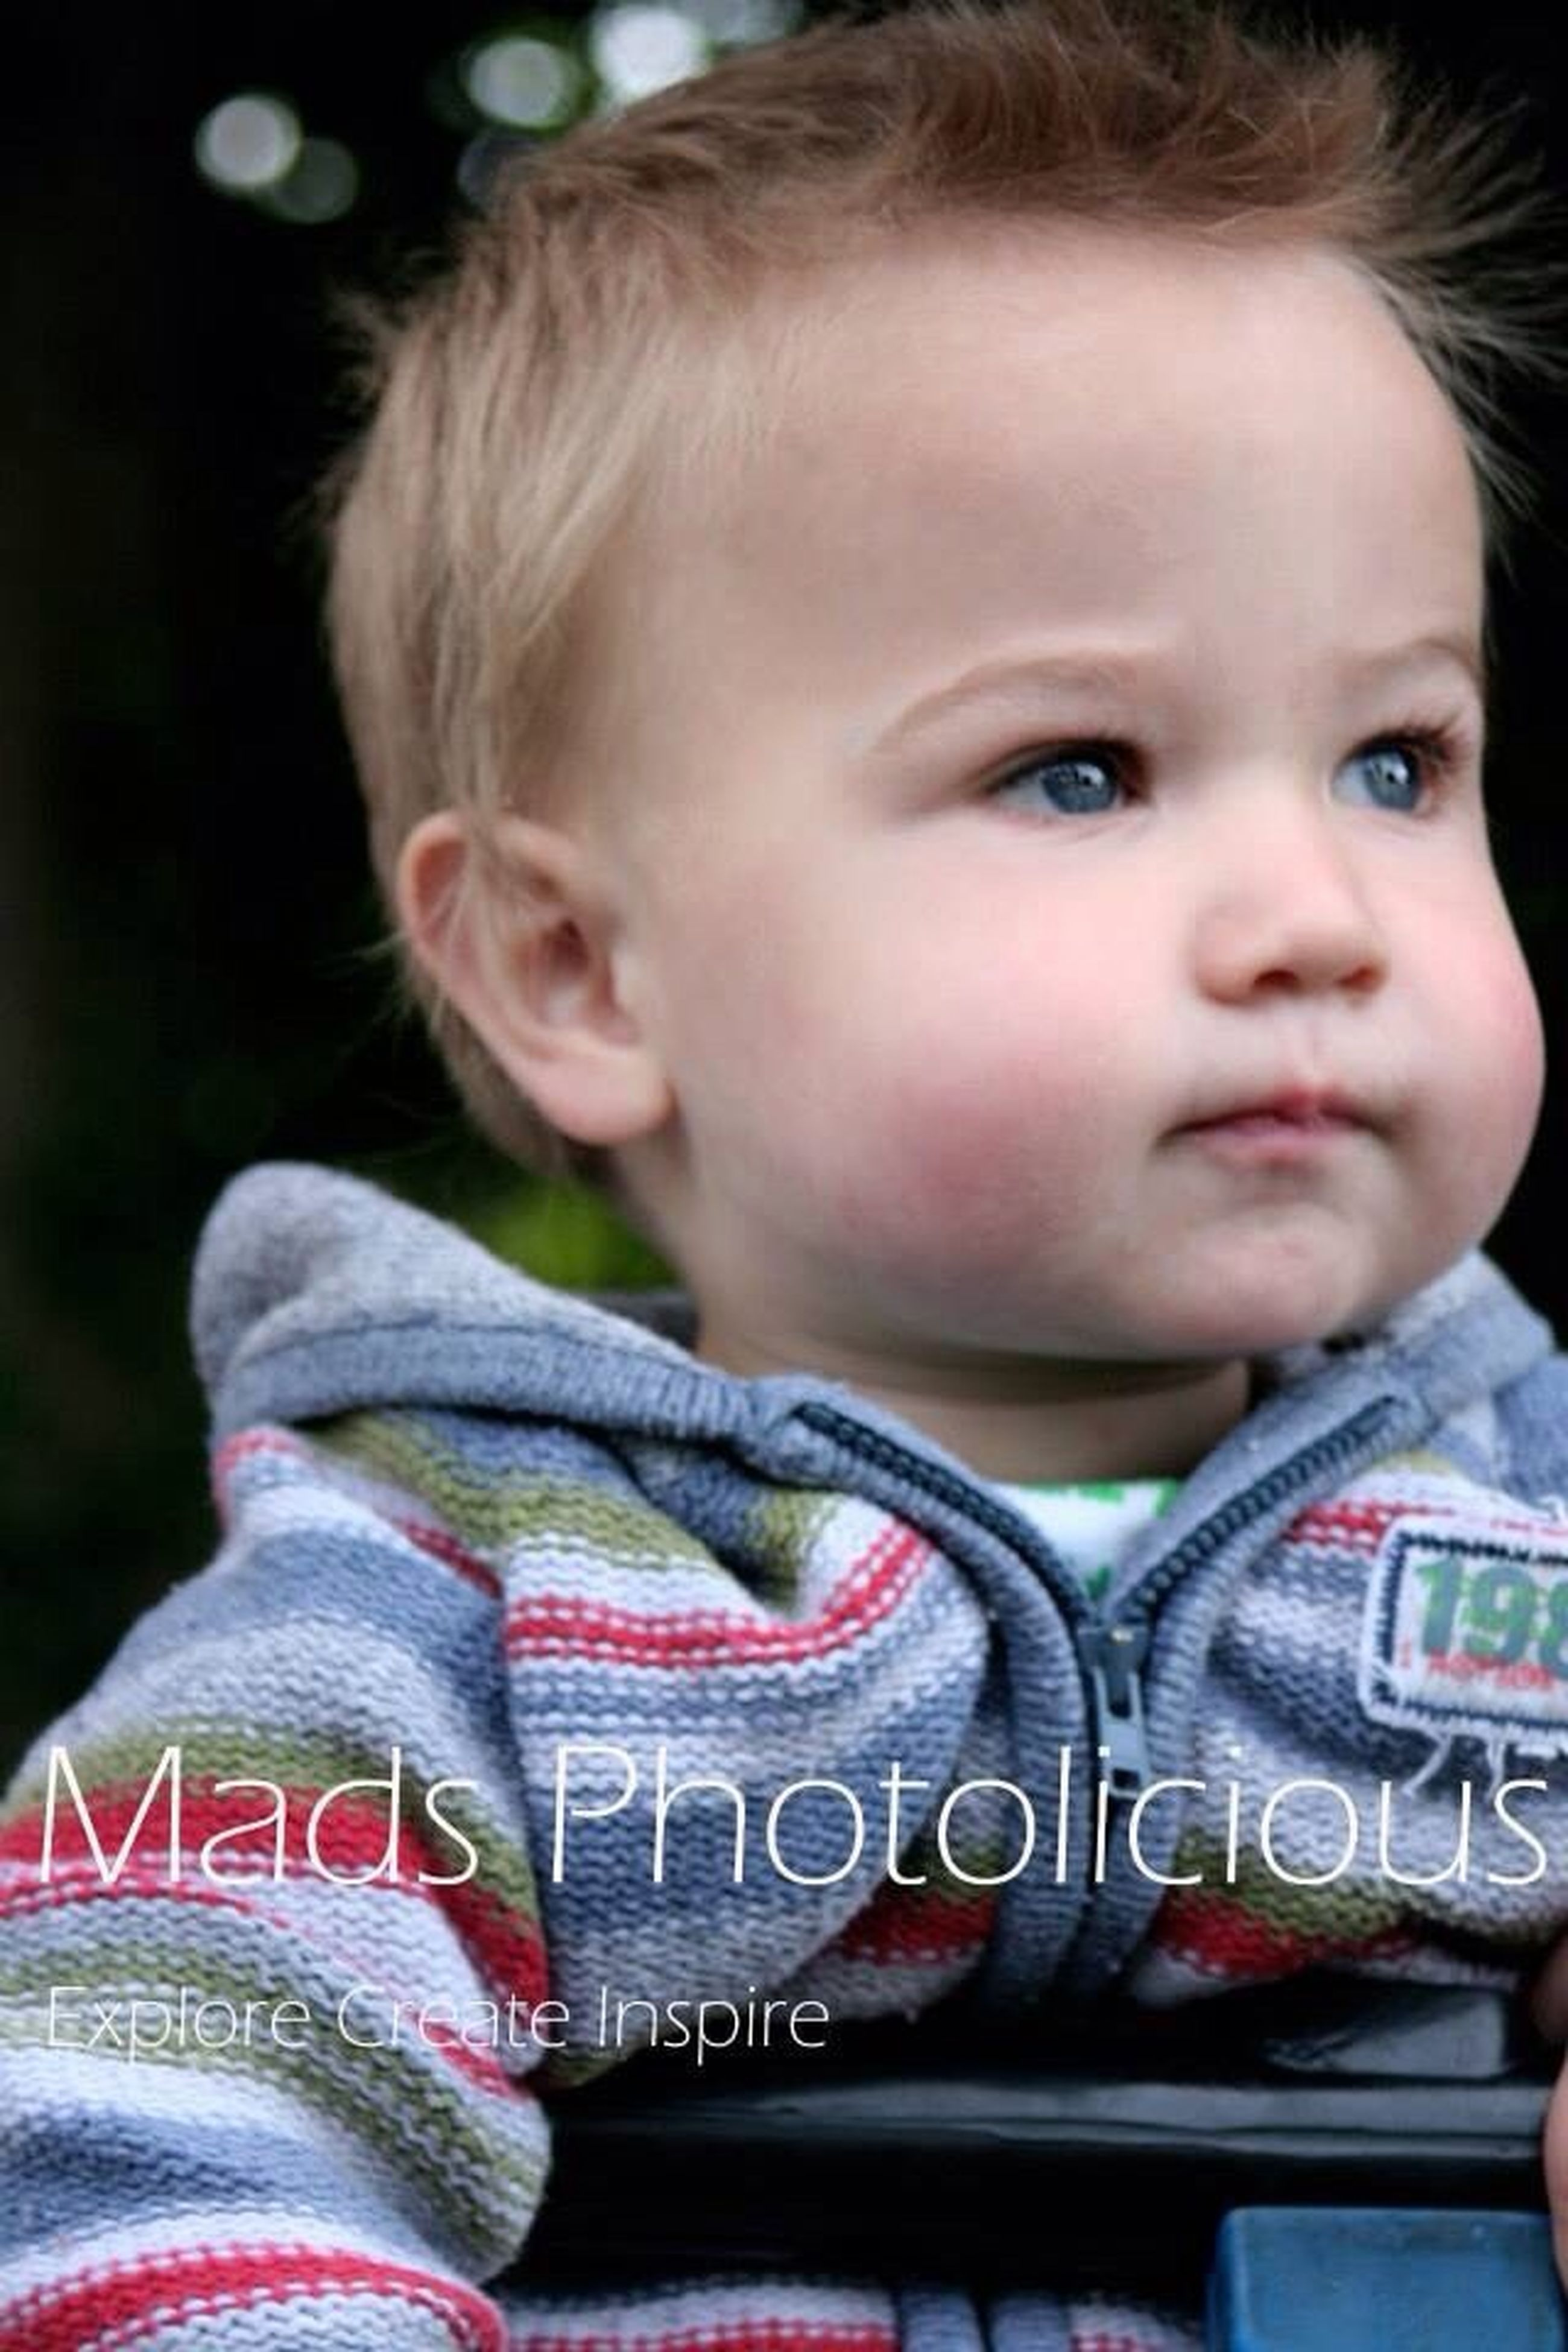 childhood, innocence, elementary age, person, cute, boys, headshot, lifestyles, girls, casual clothing, leisure activity, close-up, focus on foreground, babyhood, baby, front view, toddler, love